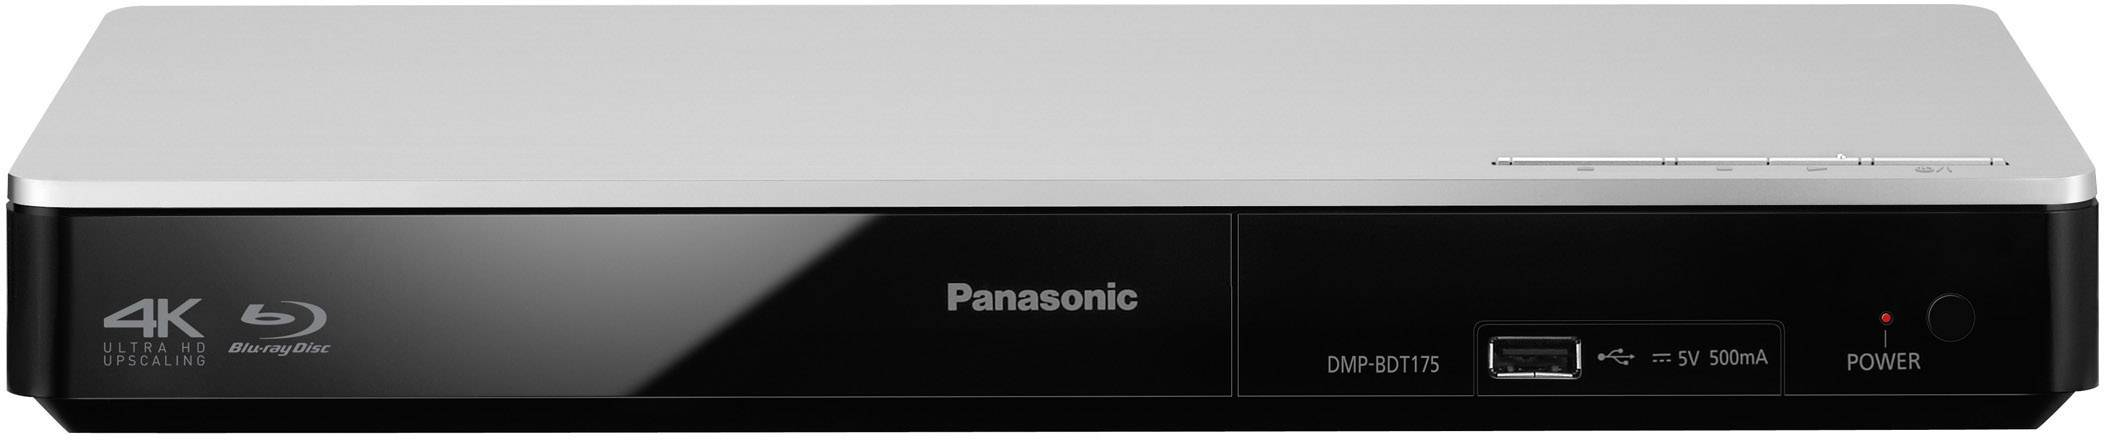 Panasonic DMP-BDT175EG Blu-ray Player Download Driver